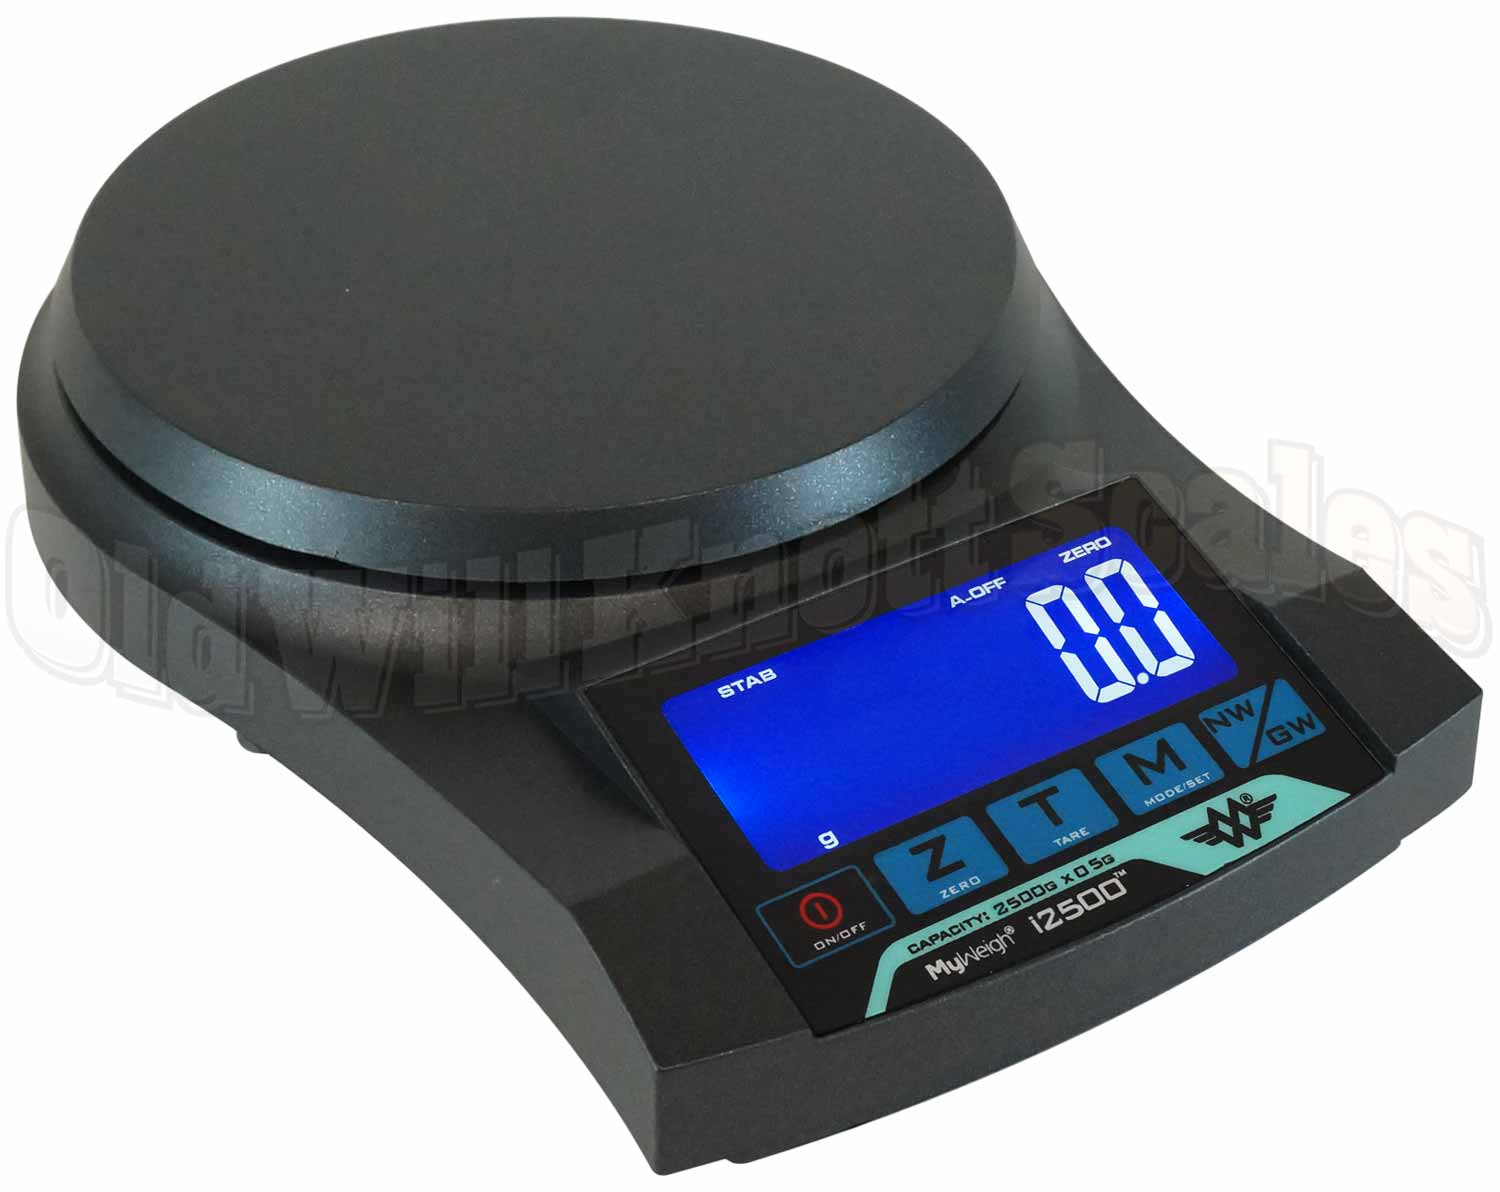 My Weigh - iBalance i2500 - Without Bowl